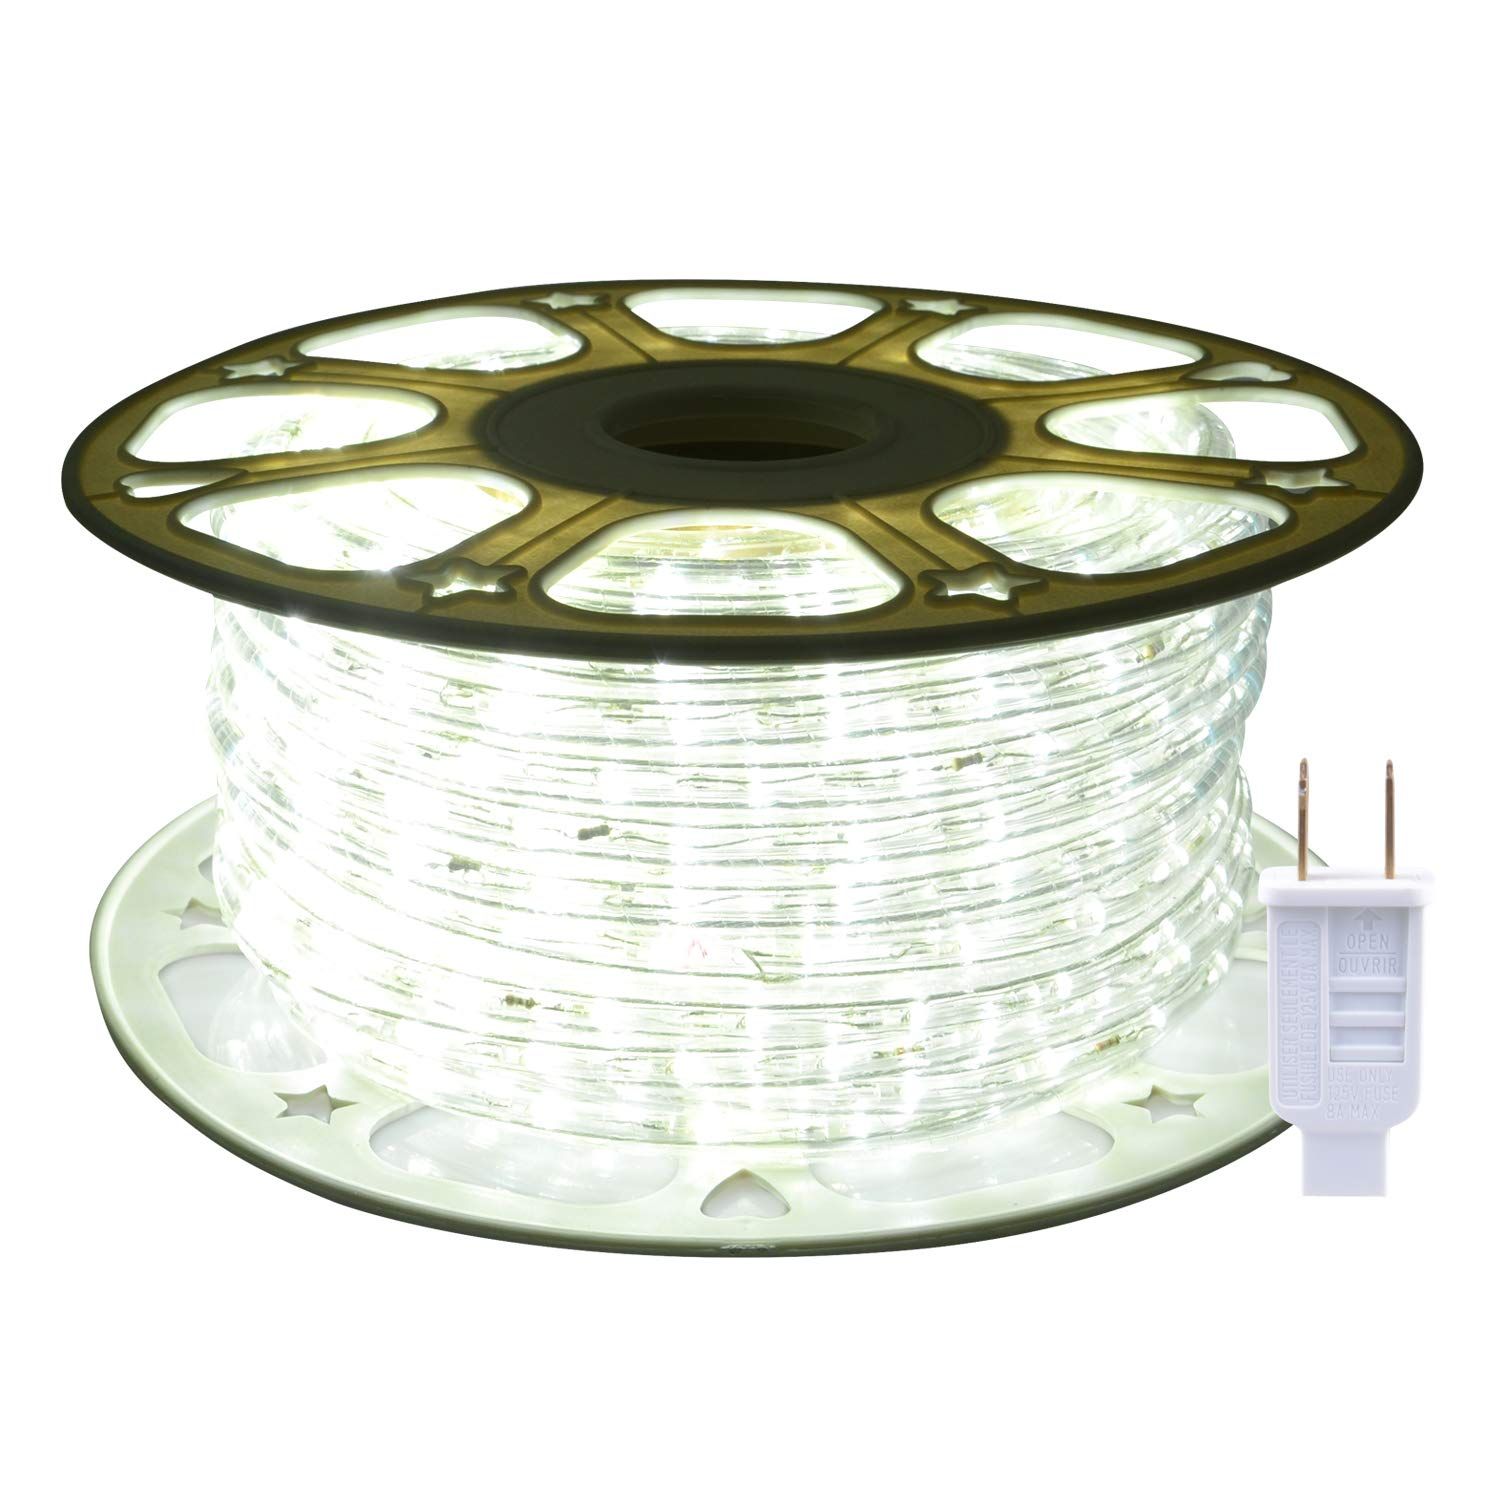 ollrieu LED Rope Lights Waterproof,Flexible 98.4ft Outdoor/Indoor Lights Strip Daylight White 6000K,720 LEDs 110V UL Power Plug,Connectable Decoration LED Rope for Patio Room Party Camping